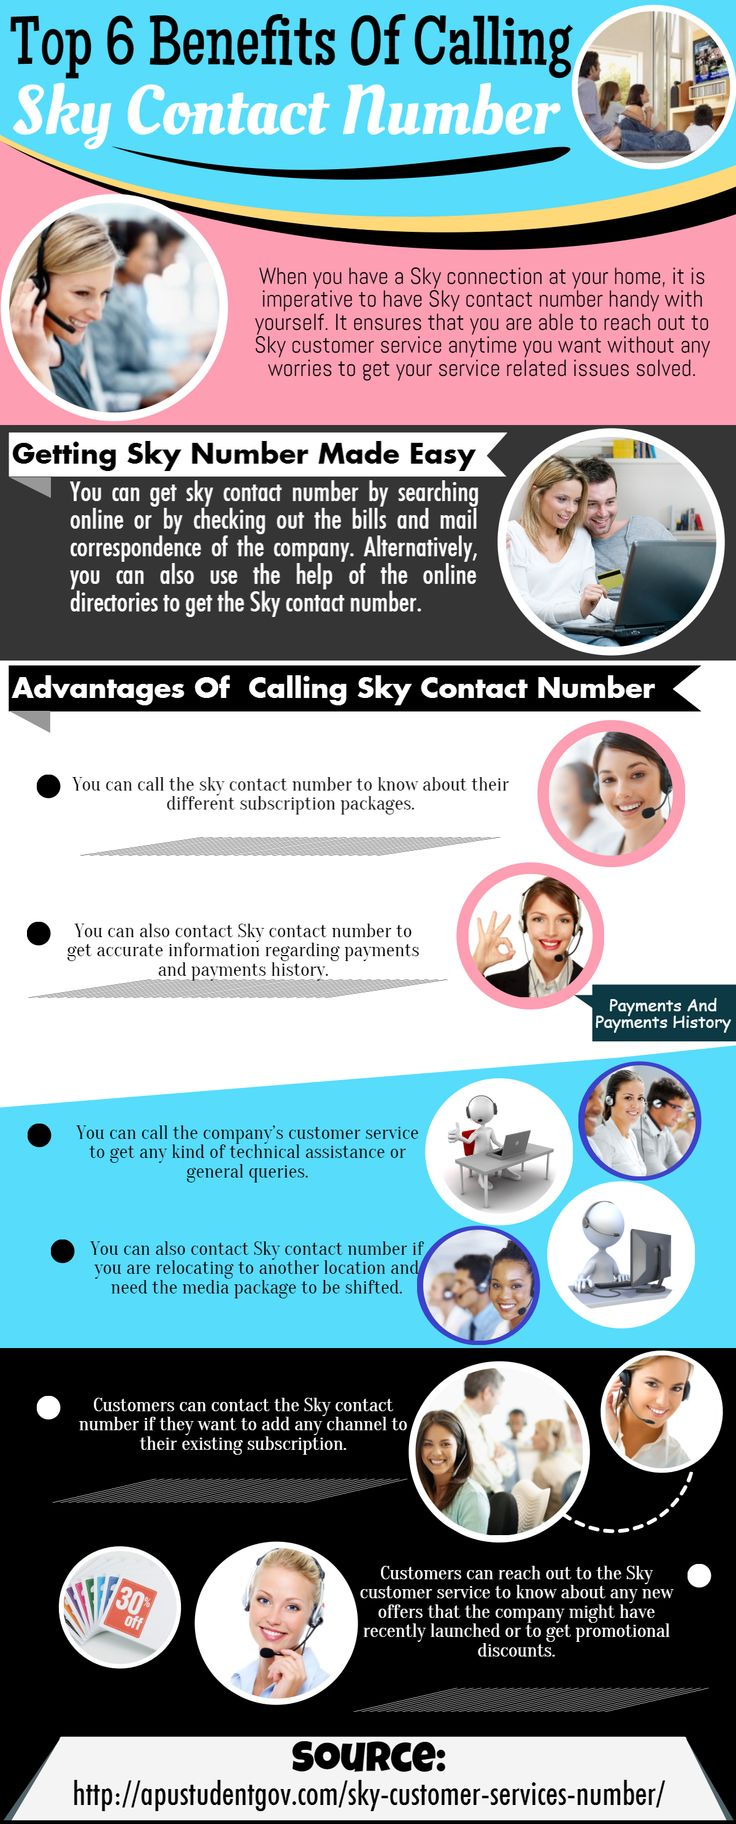 Sky customer services number remains busy while offering the resonant information to the seekers who want to know about the cost and rentals of the new plans. For More Information about sky customer services number, please check http://apustudentgov.com/sky-customer-services-number/